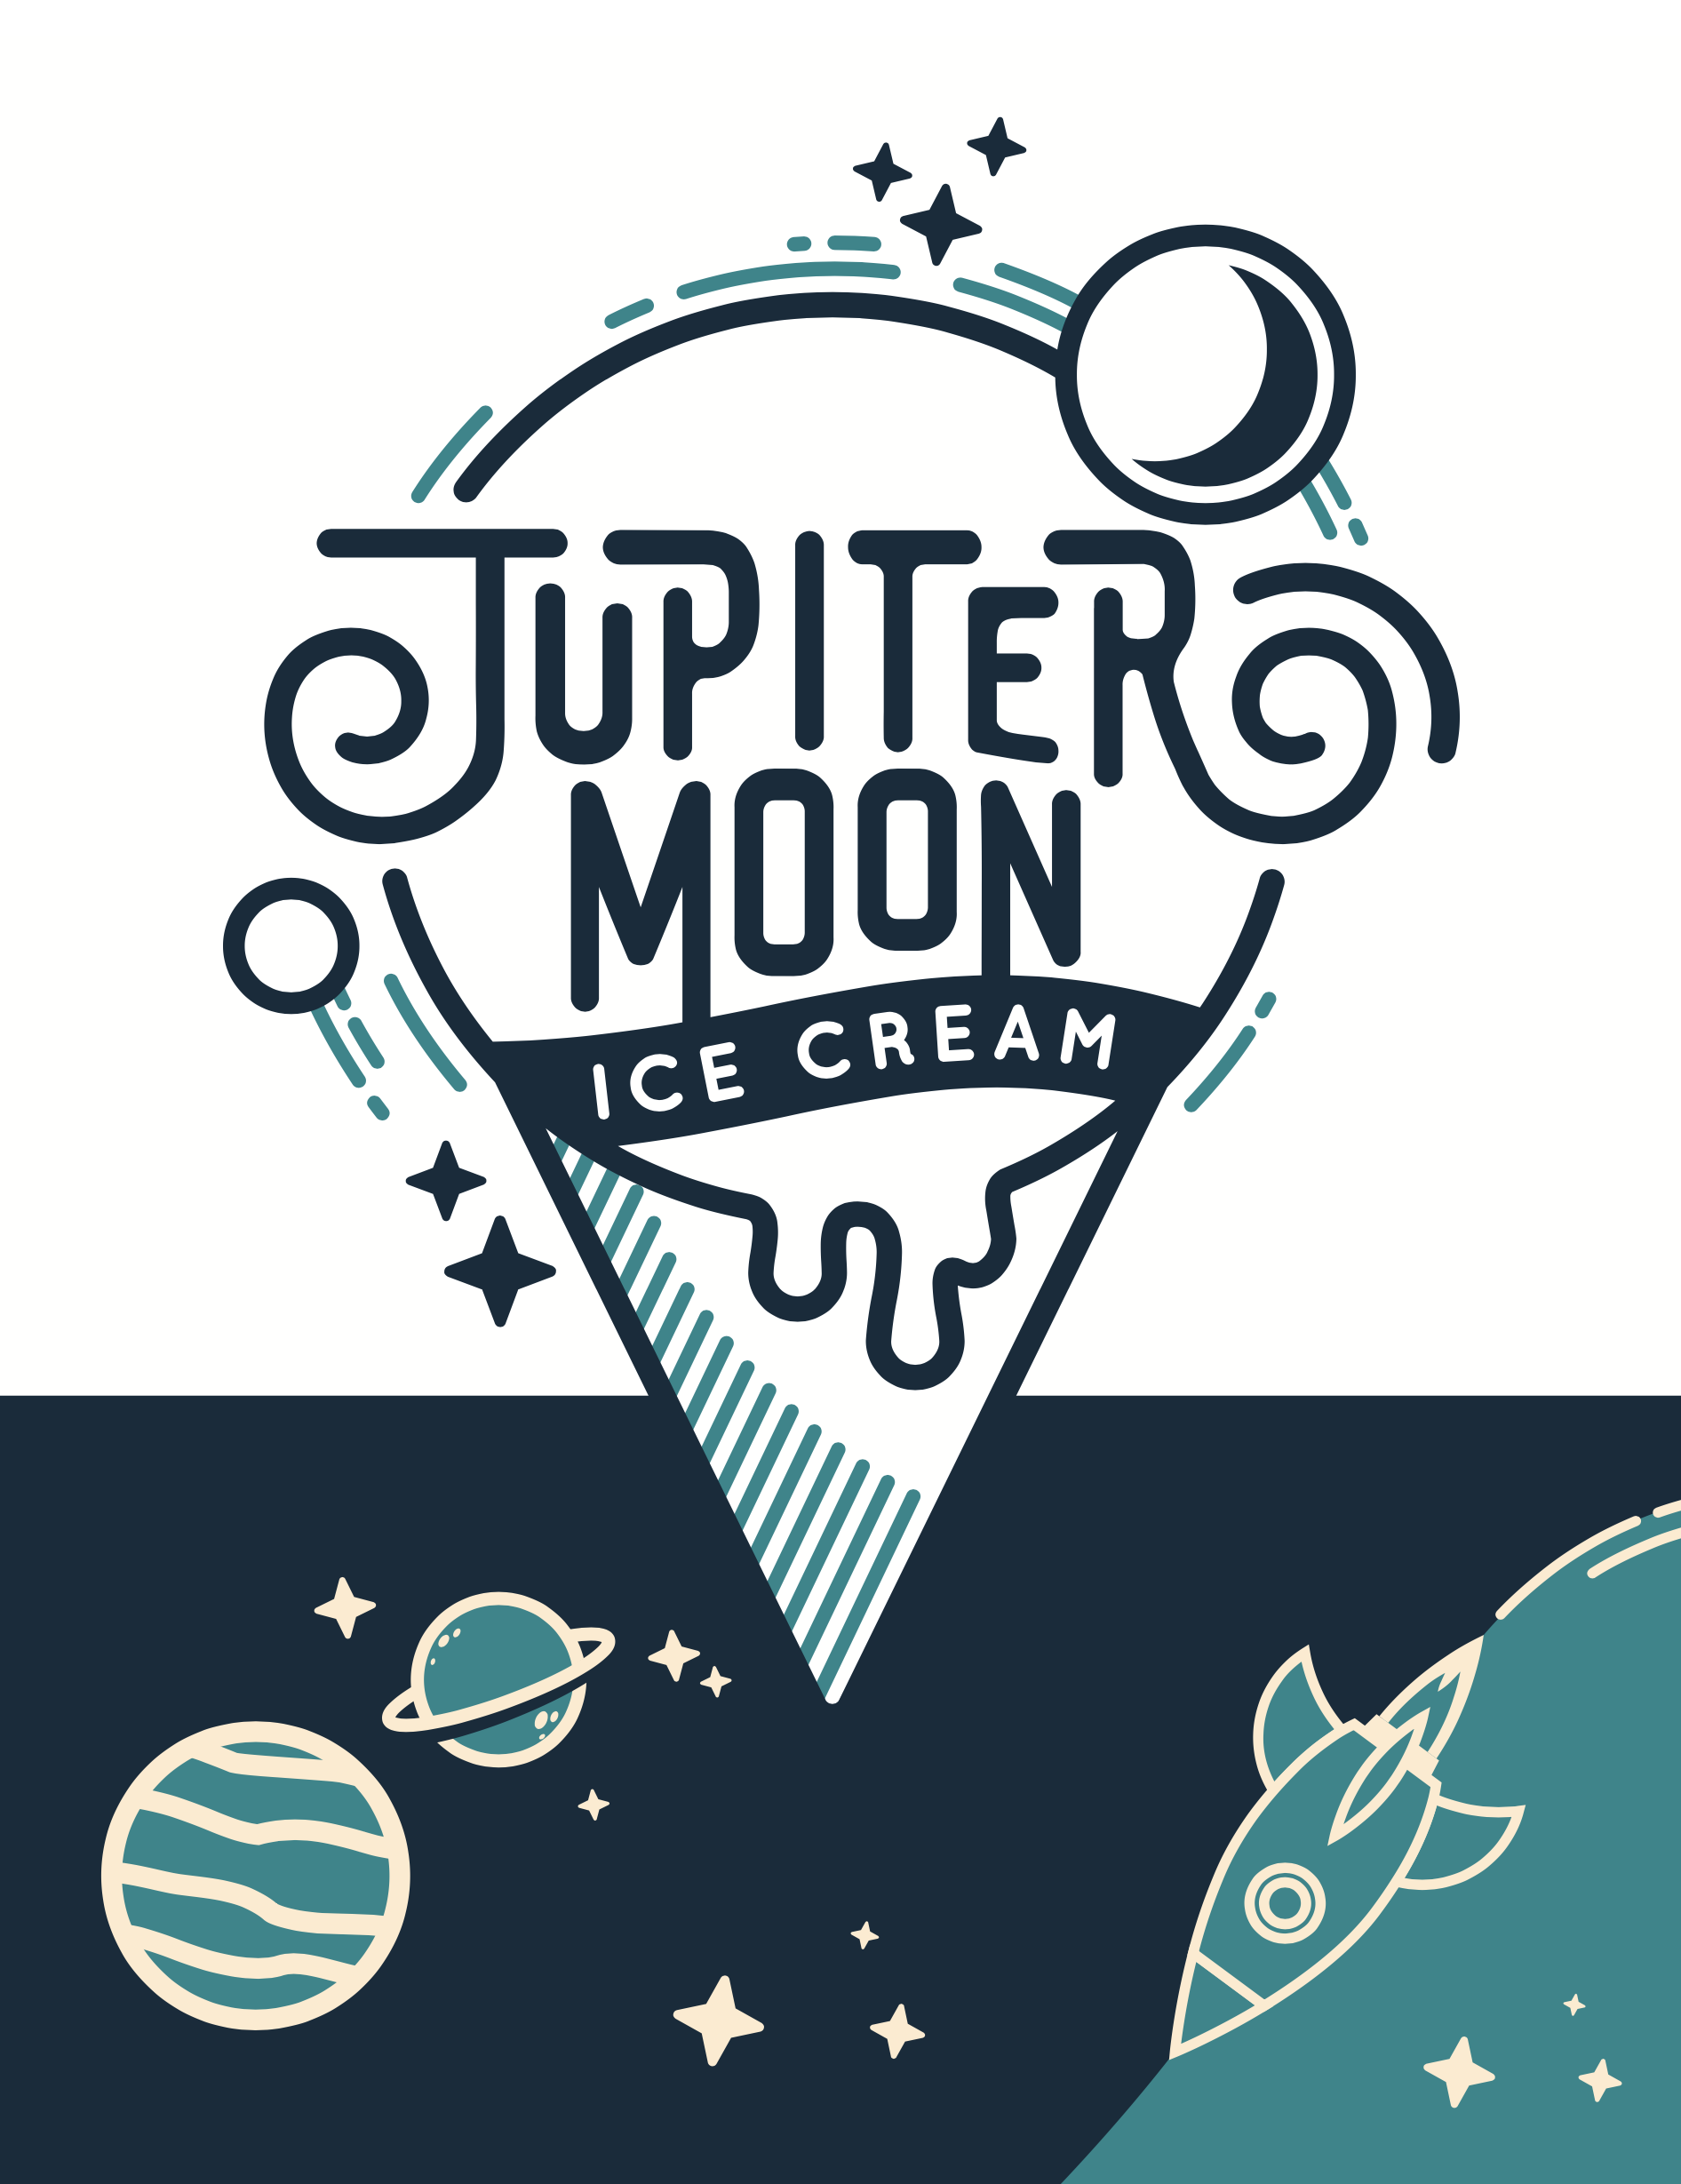 Jupiter Moon Ice Cream